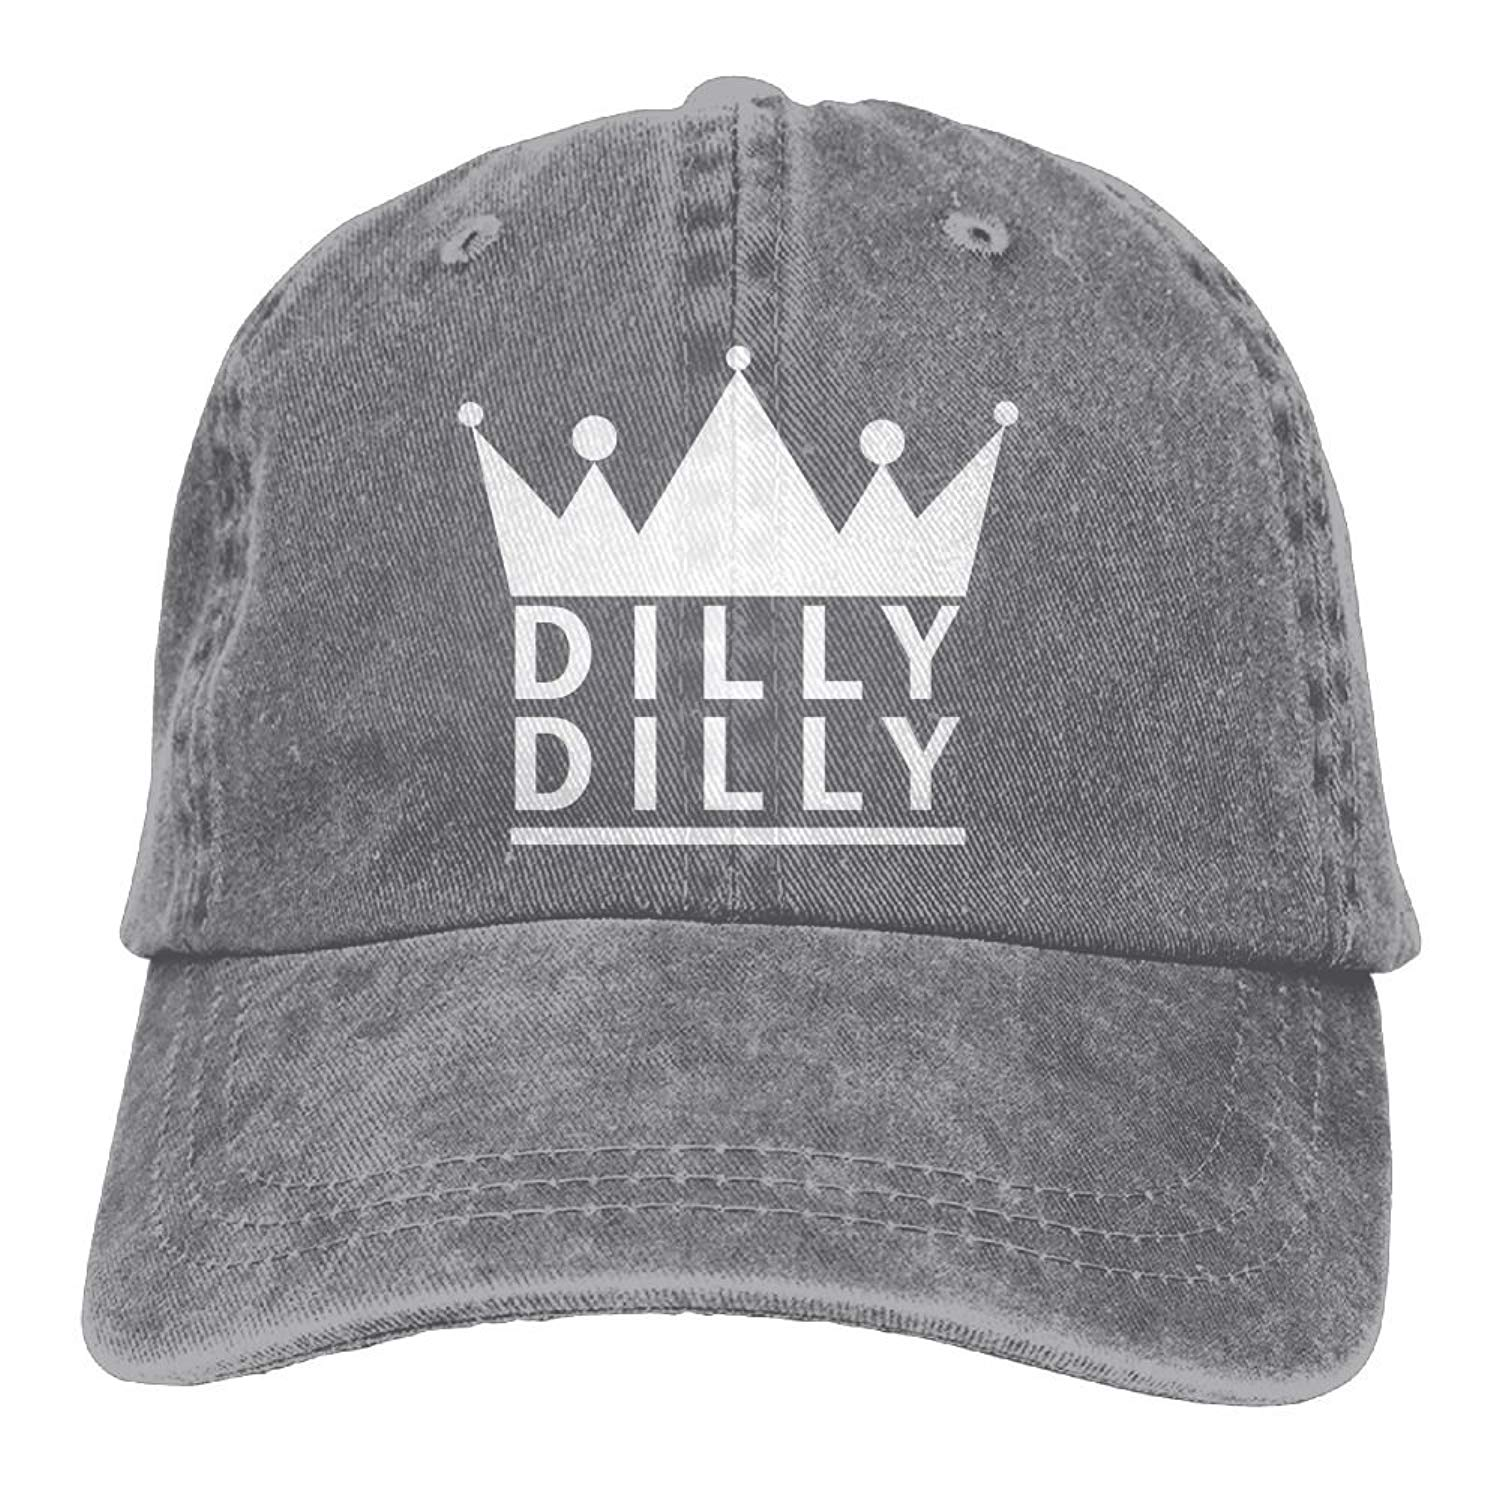 UCOOLE Dilly Dilly Beer Medieval Dad Hat Adjustable Denim Hat Classic Baseball Cap